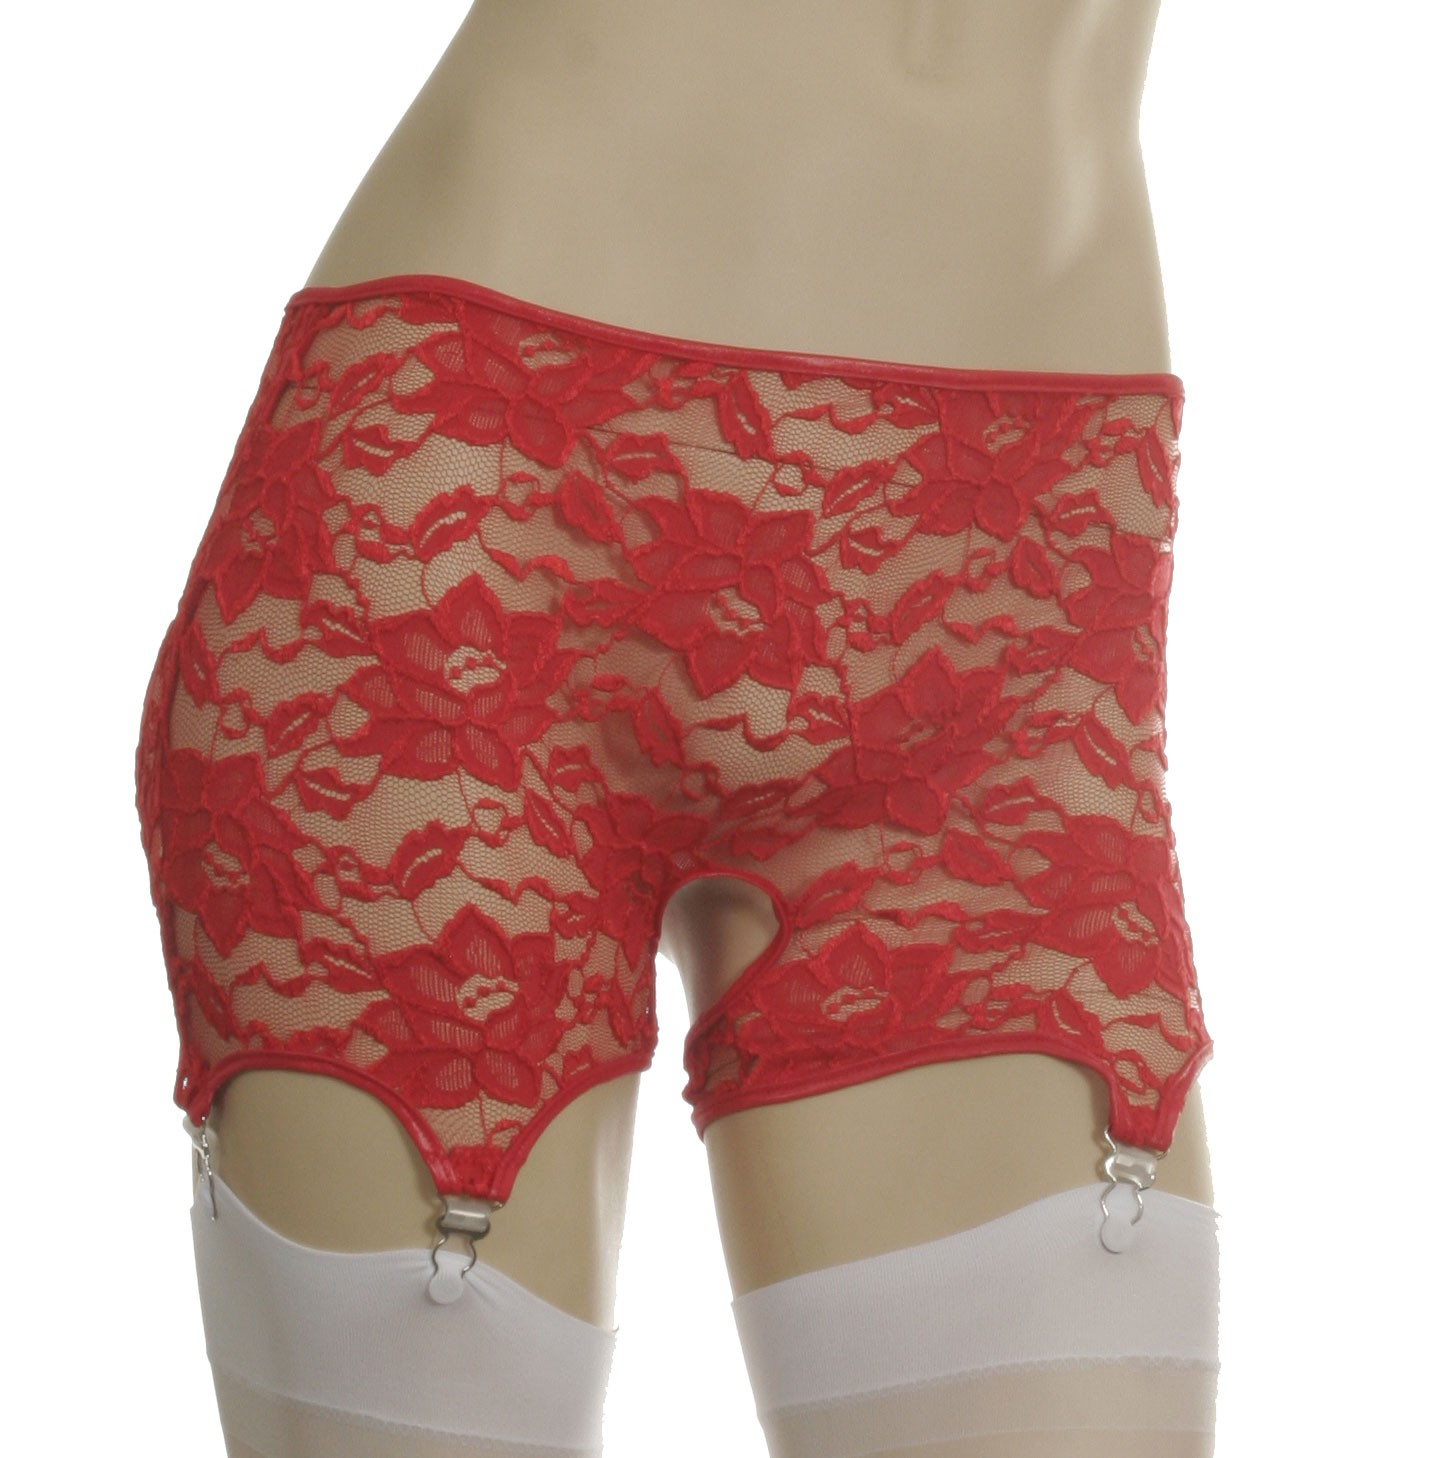 Stretch lace open crotch, open back shorts with garters GB6L